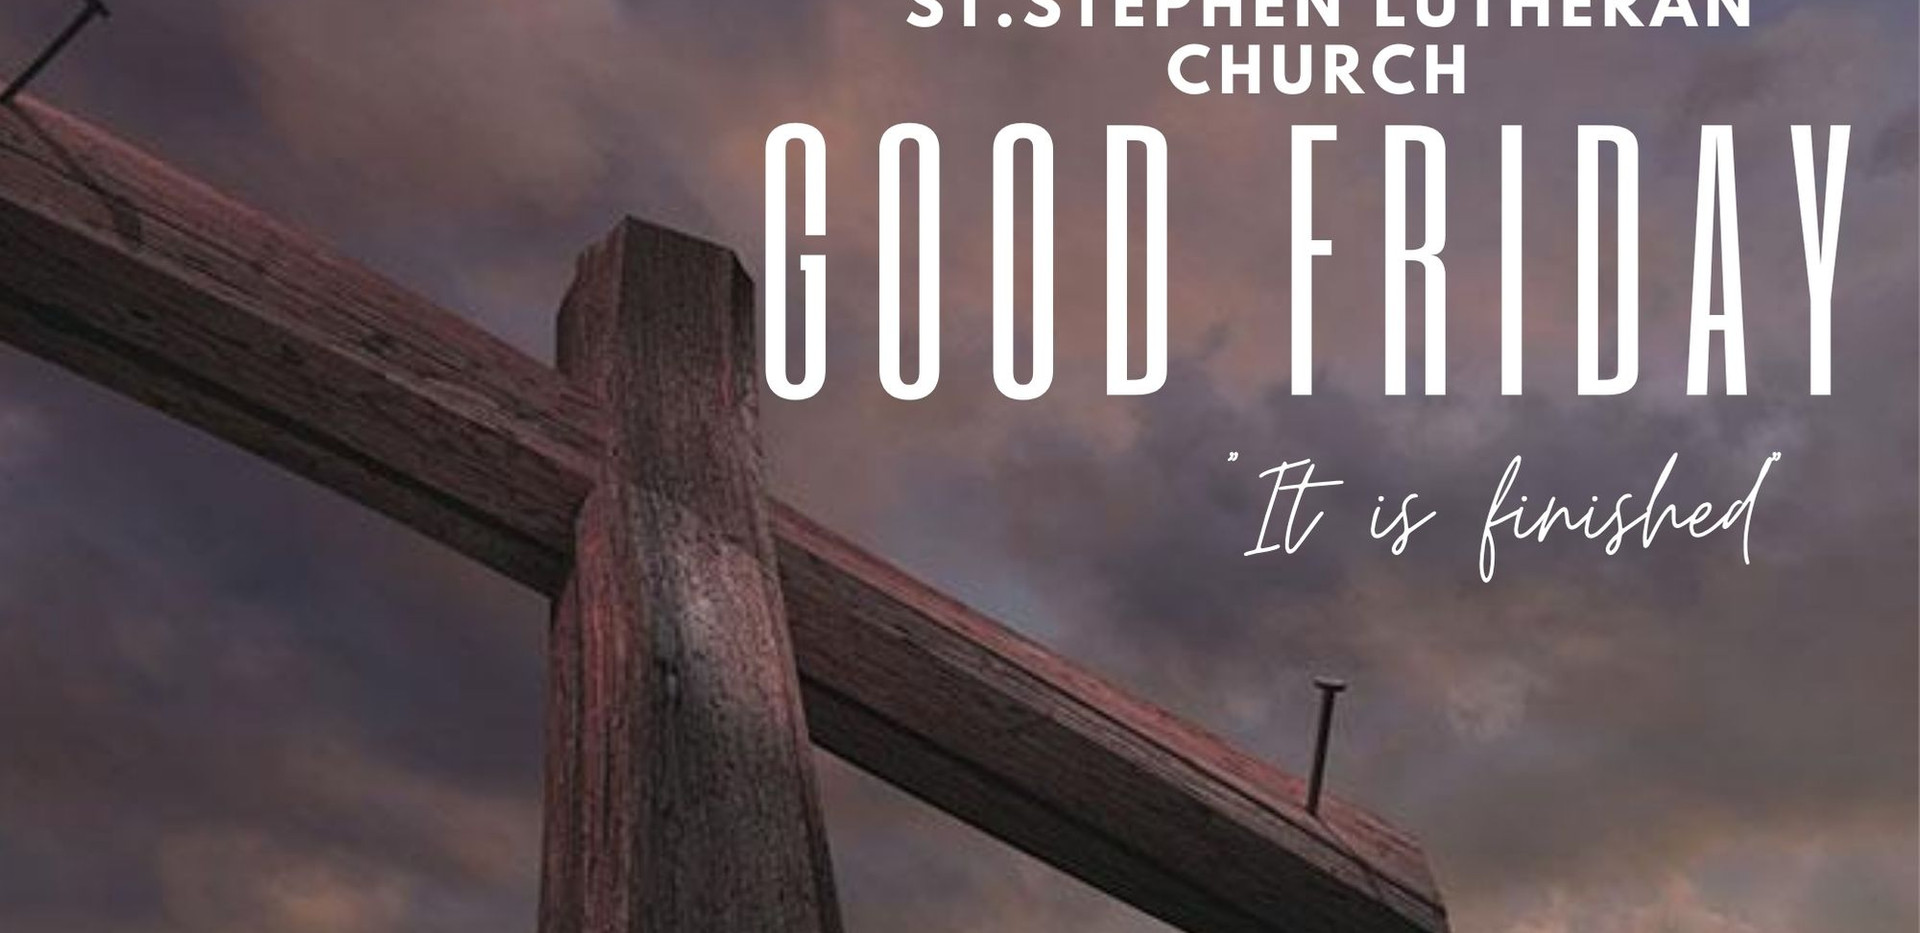 Good Friday on April 2nd